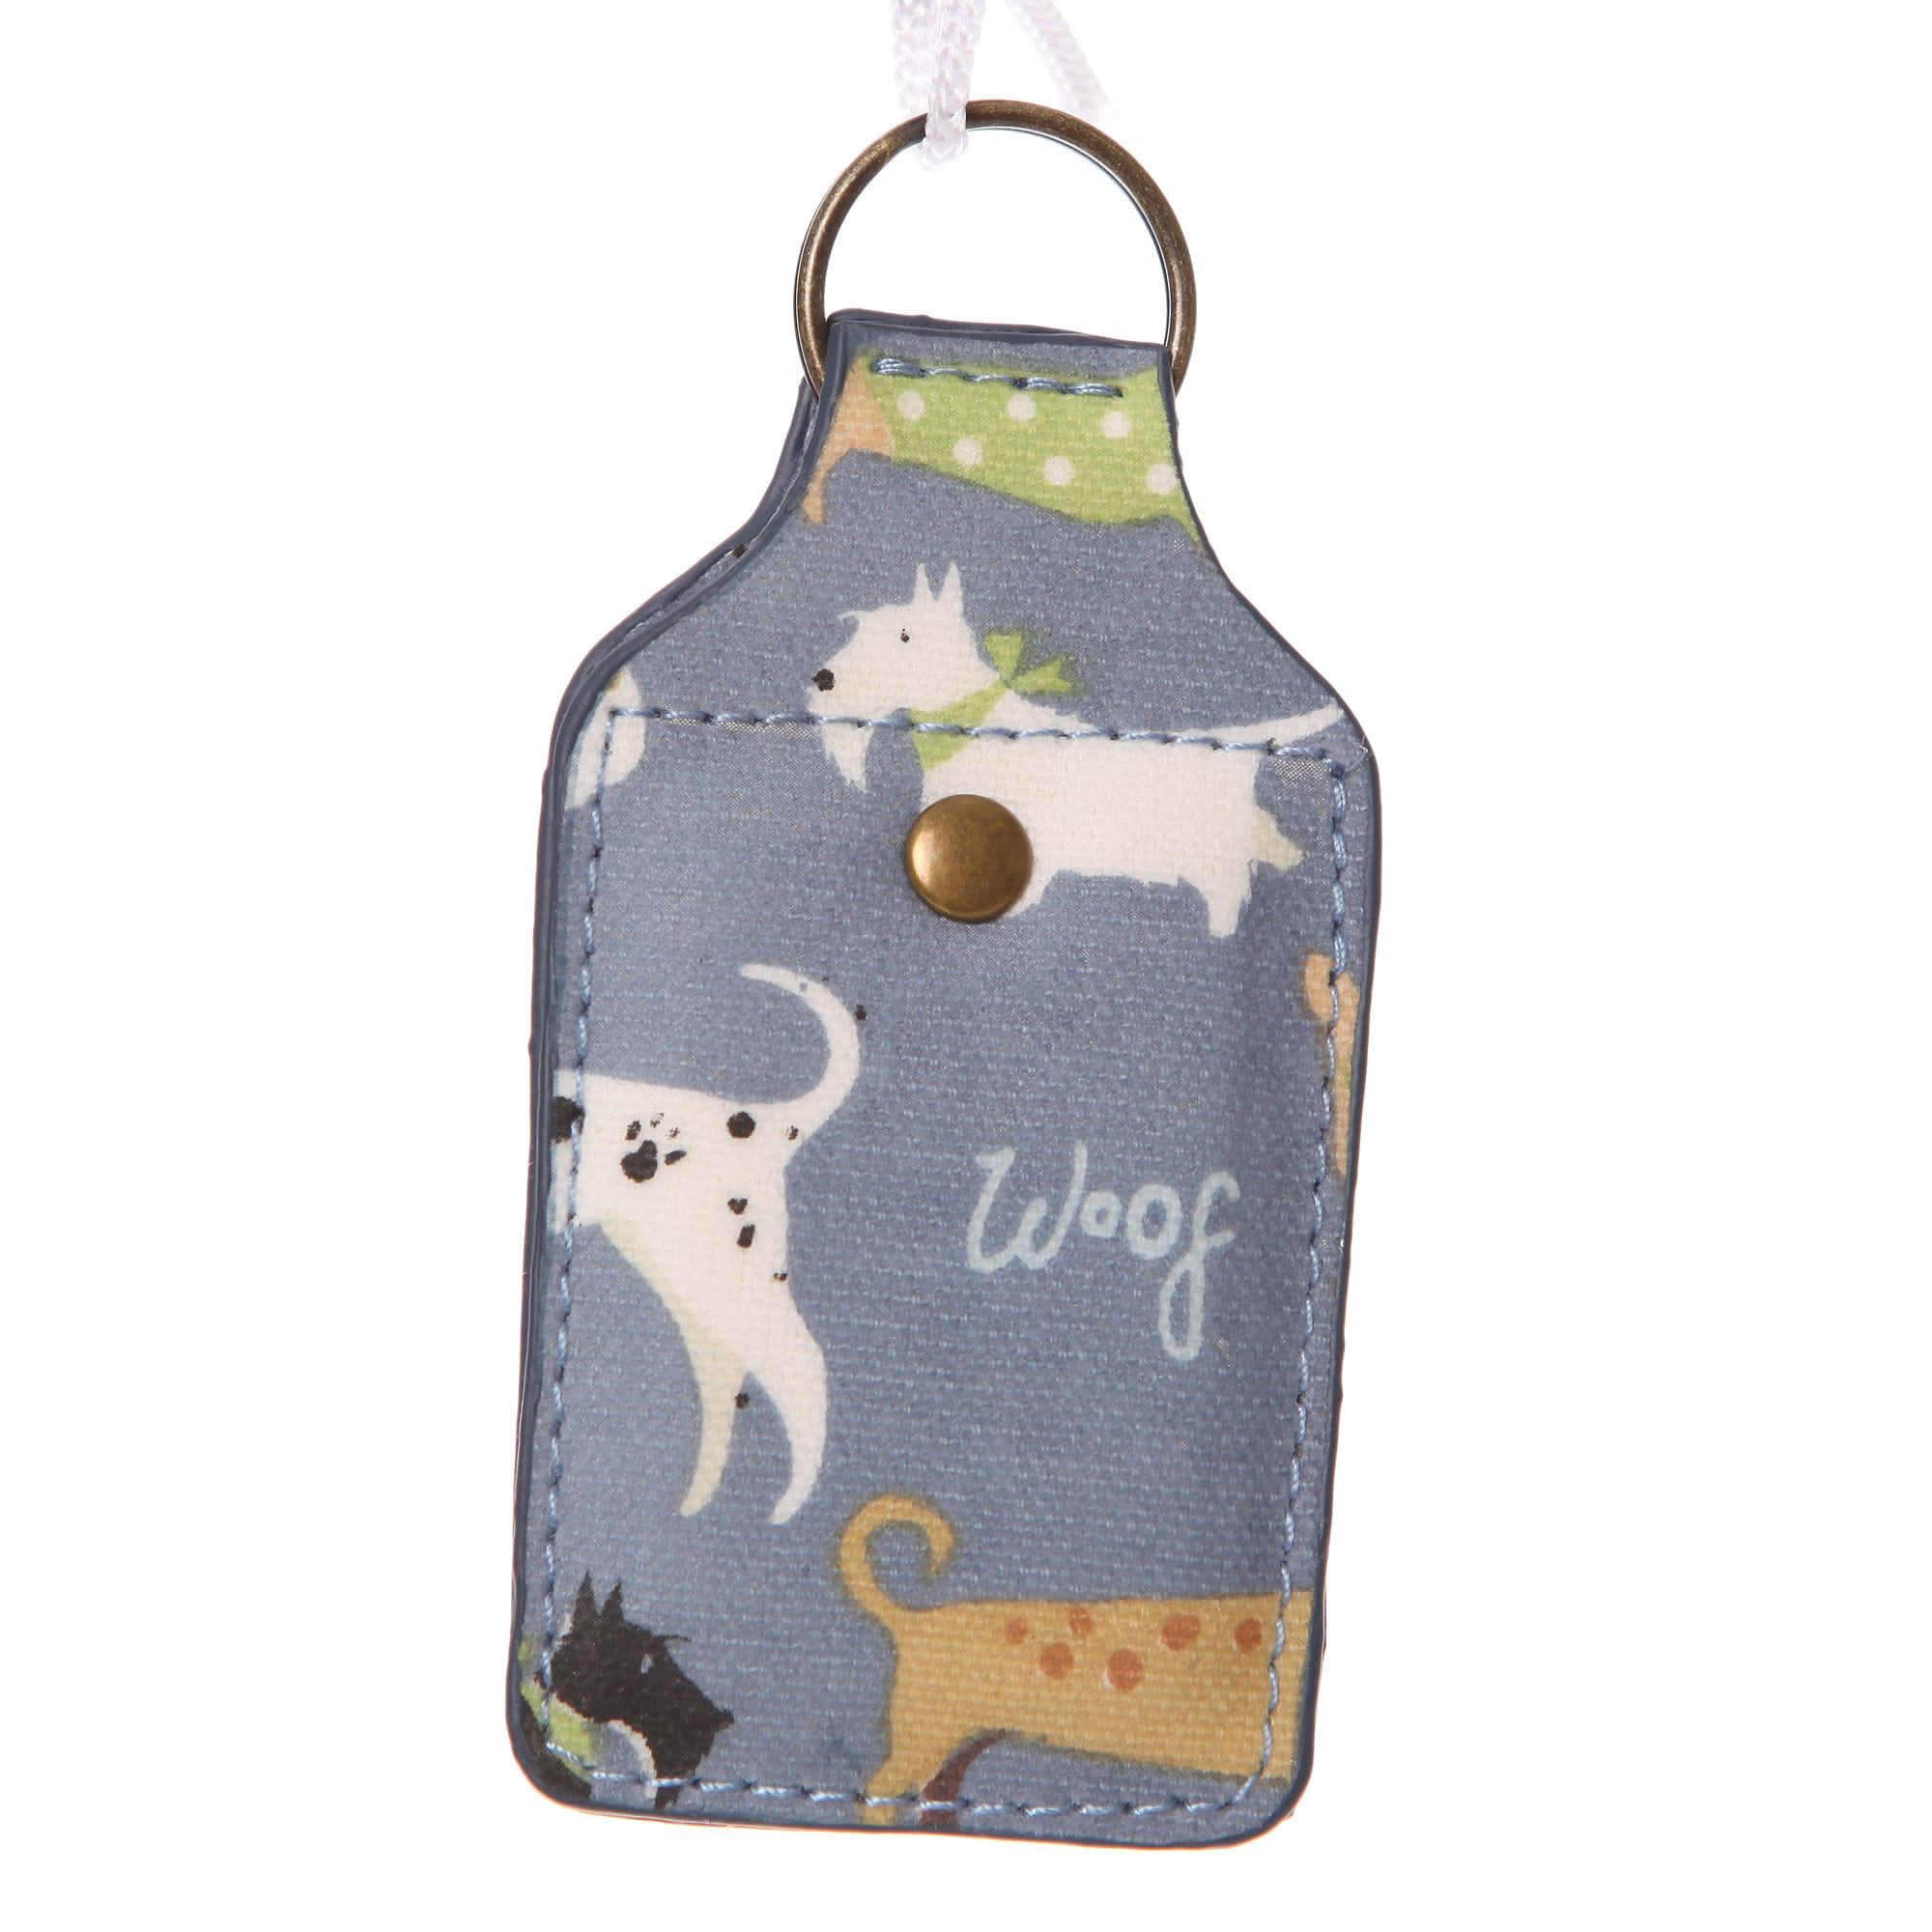 Lisa Buckridge Walkies oilcloth key ring blue